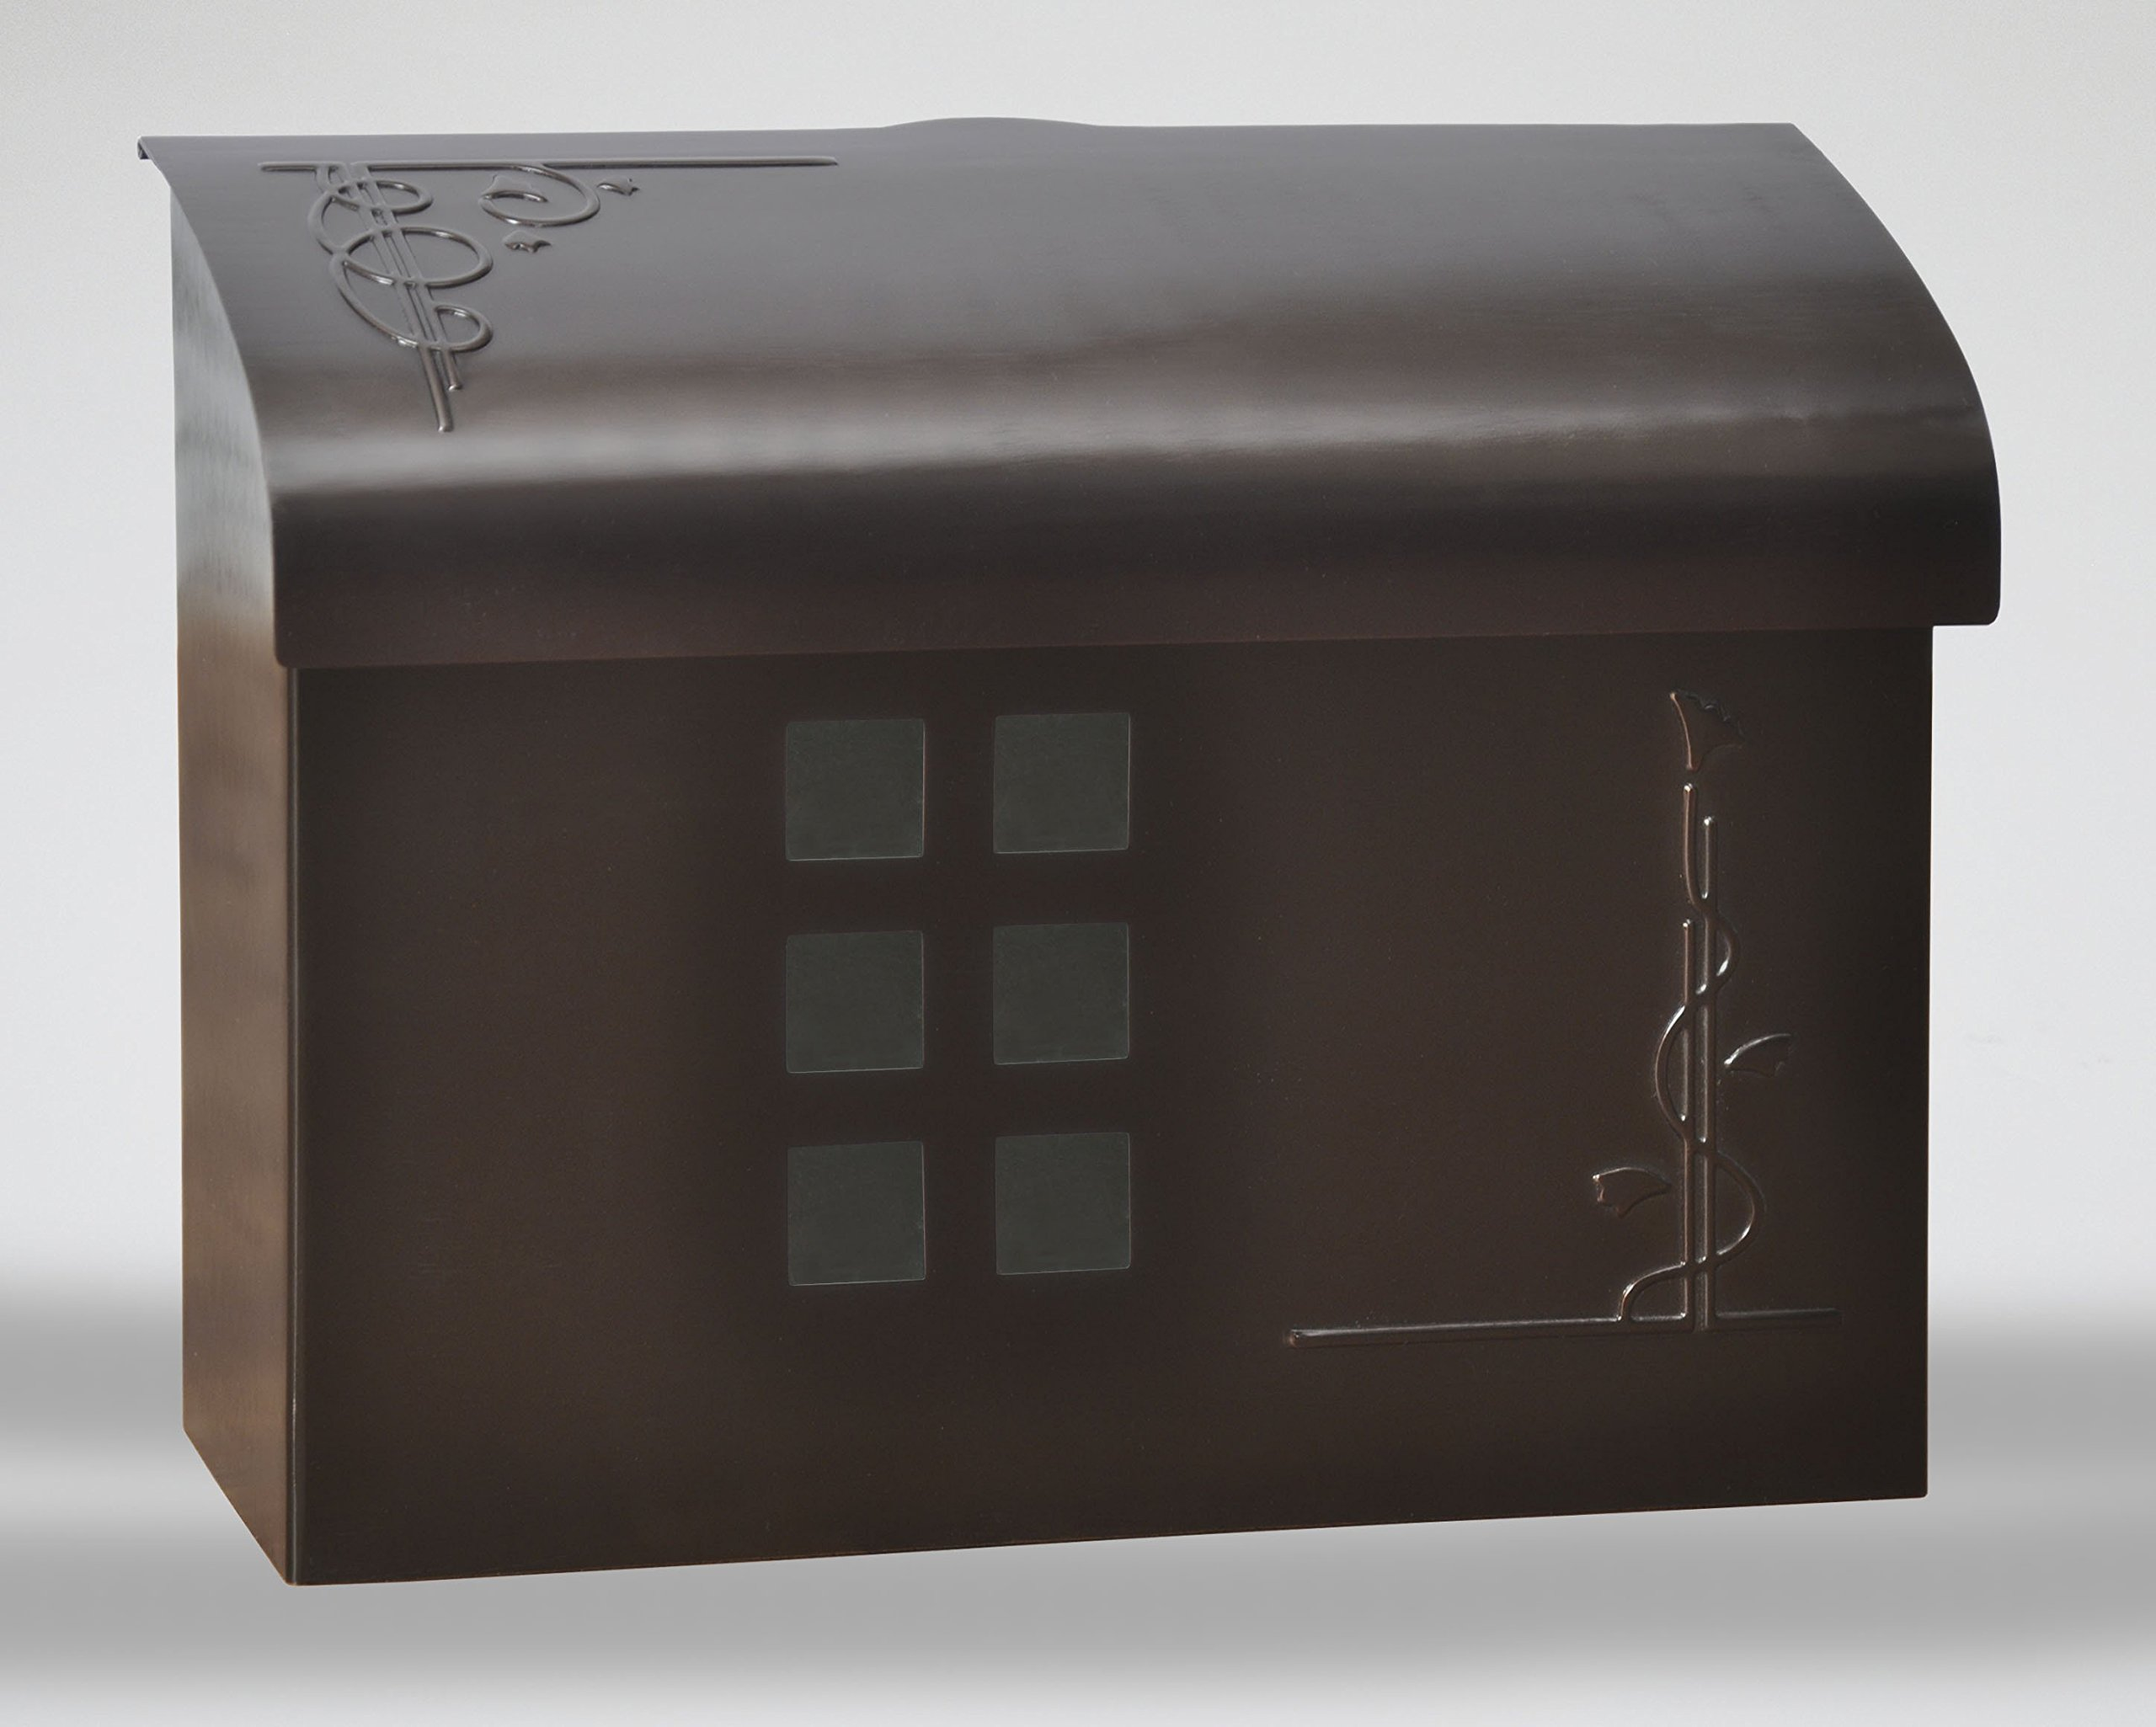 Ecco E7 Arts and Crafts Mailbox - Large Brass Wall Mount Mailbox - 6 Finishes Available (Bronze) by ECCO